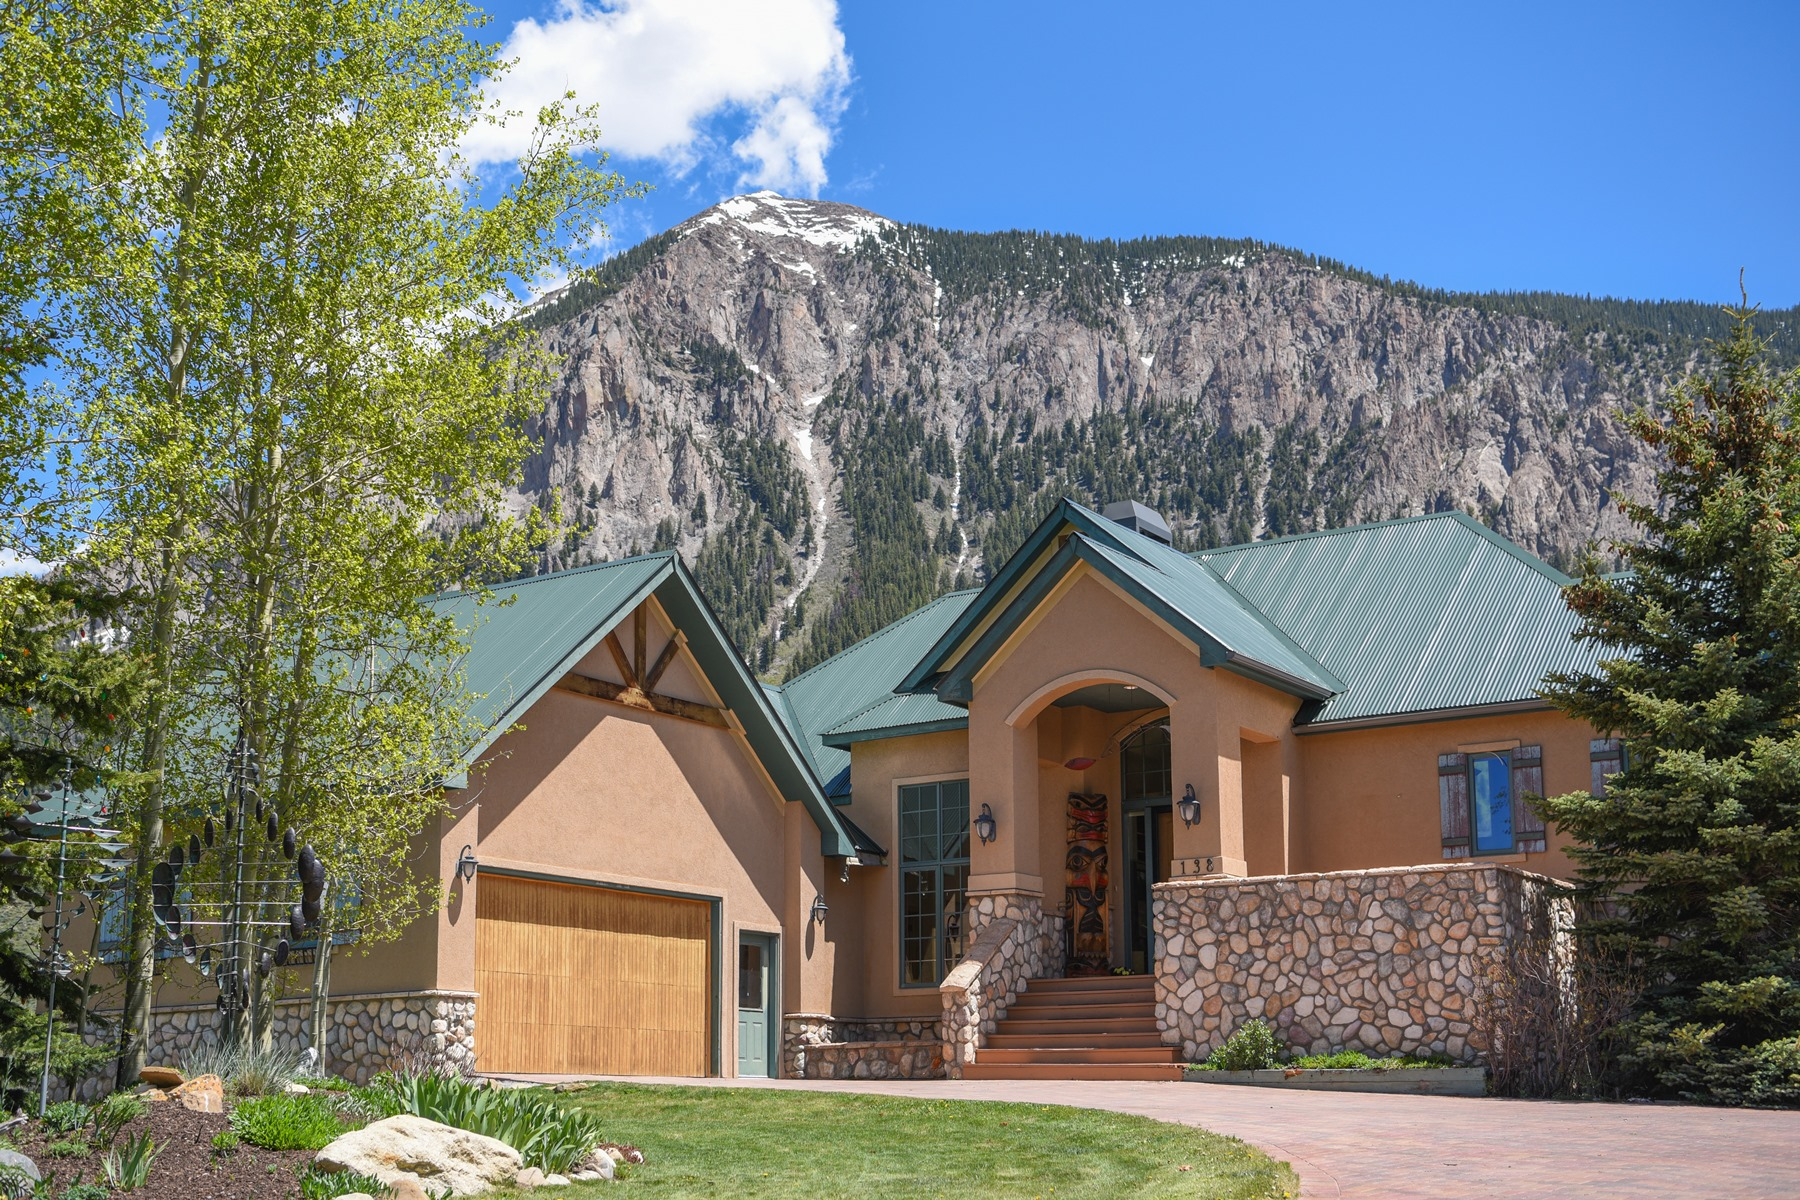 Single Family Homes のために 売買 アット Spacious Home with Incredible Views 138 E. Silver Sage Drive, Crested Butte, コロラド 81224 アメリカ